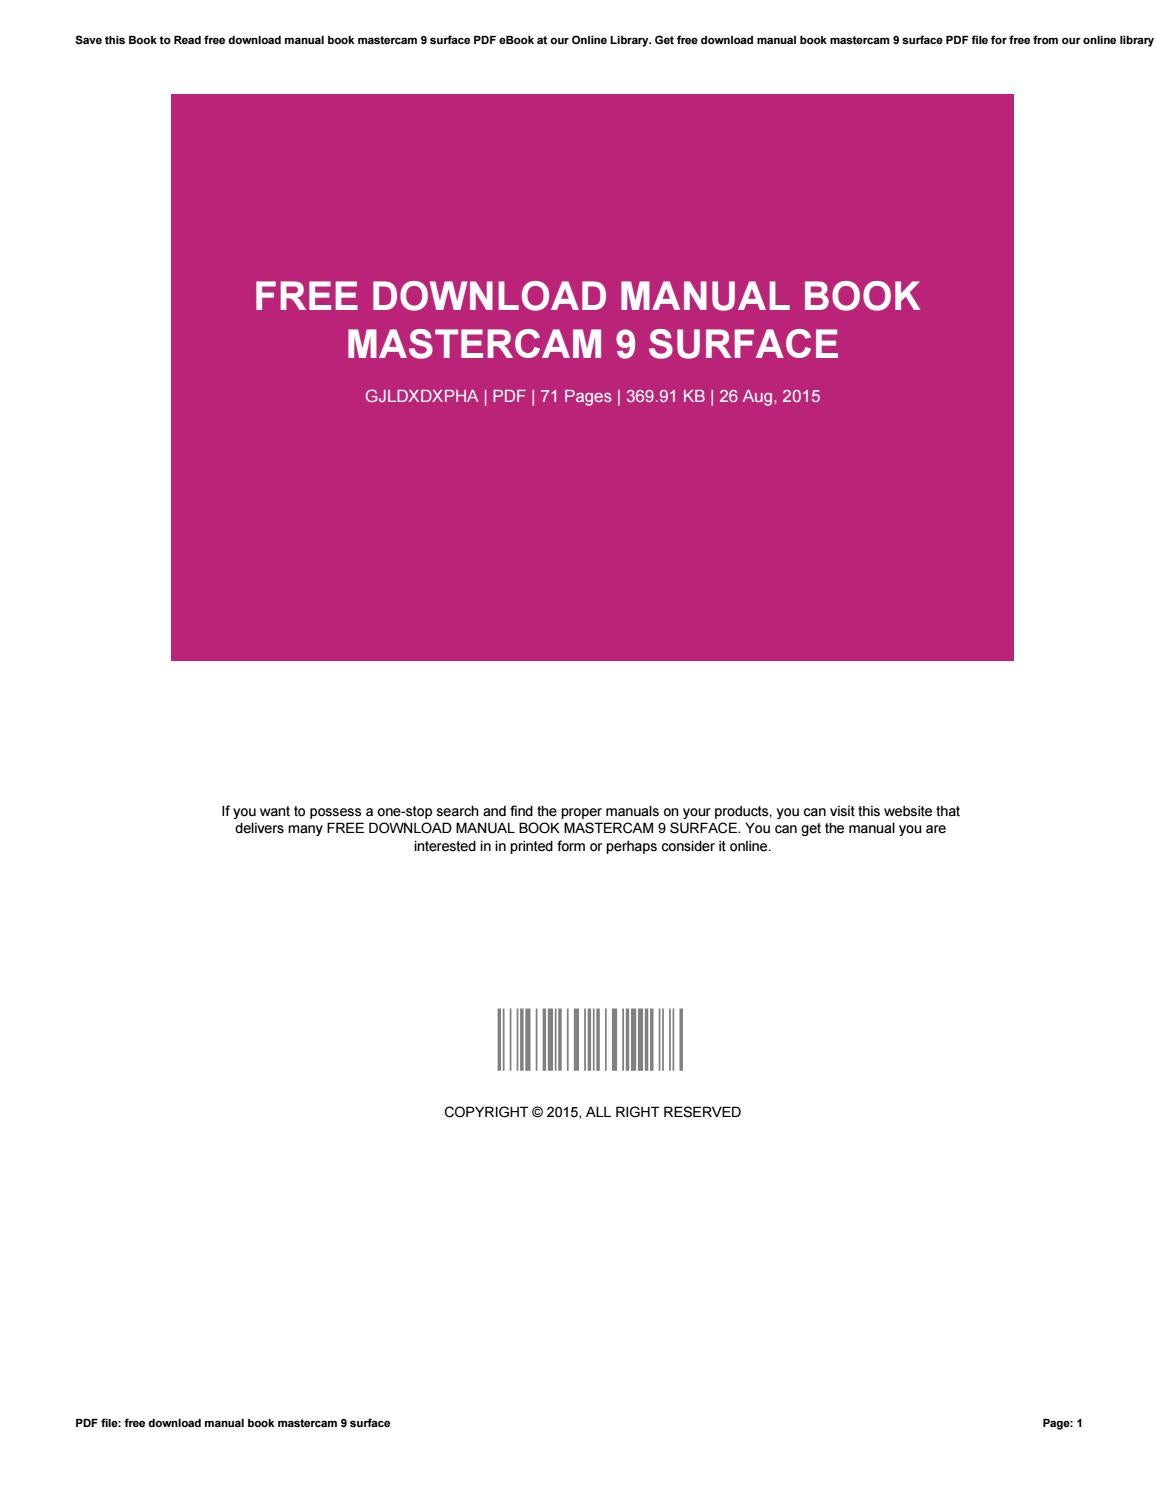 Free download manual book mastercam 9 surface by bertha issuu baditri Gallery